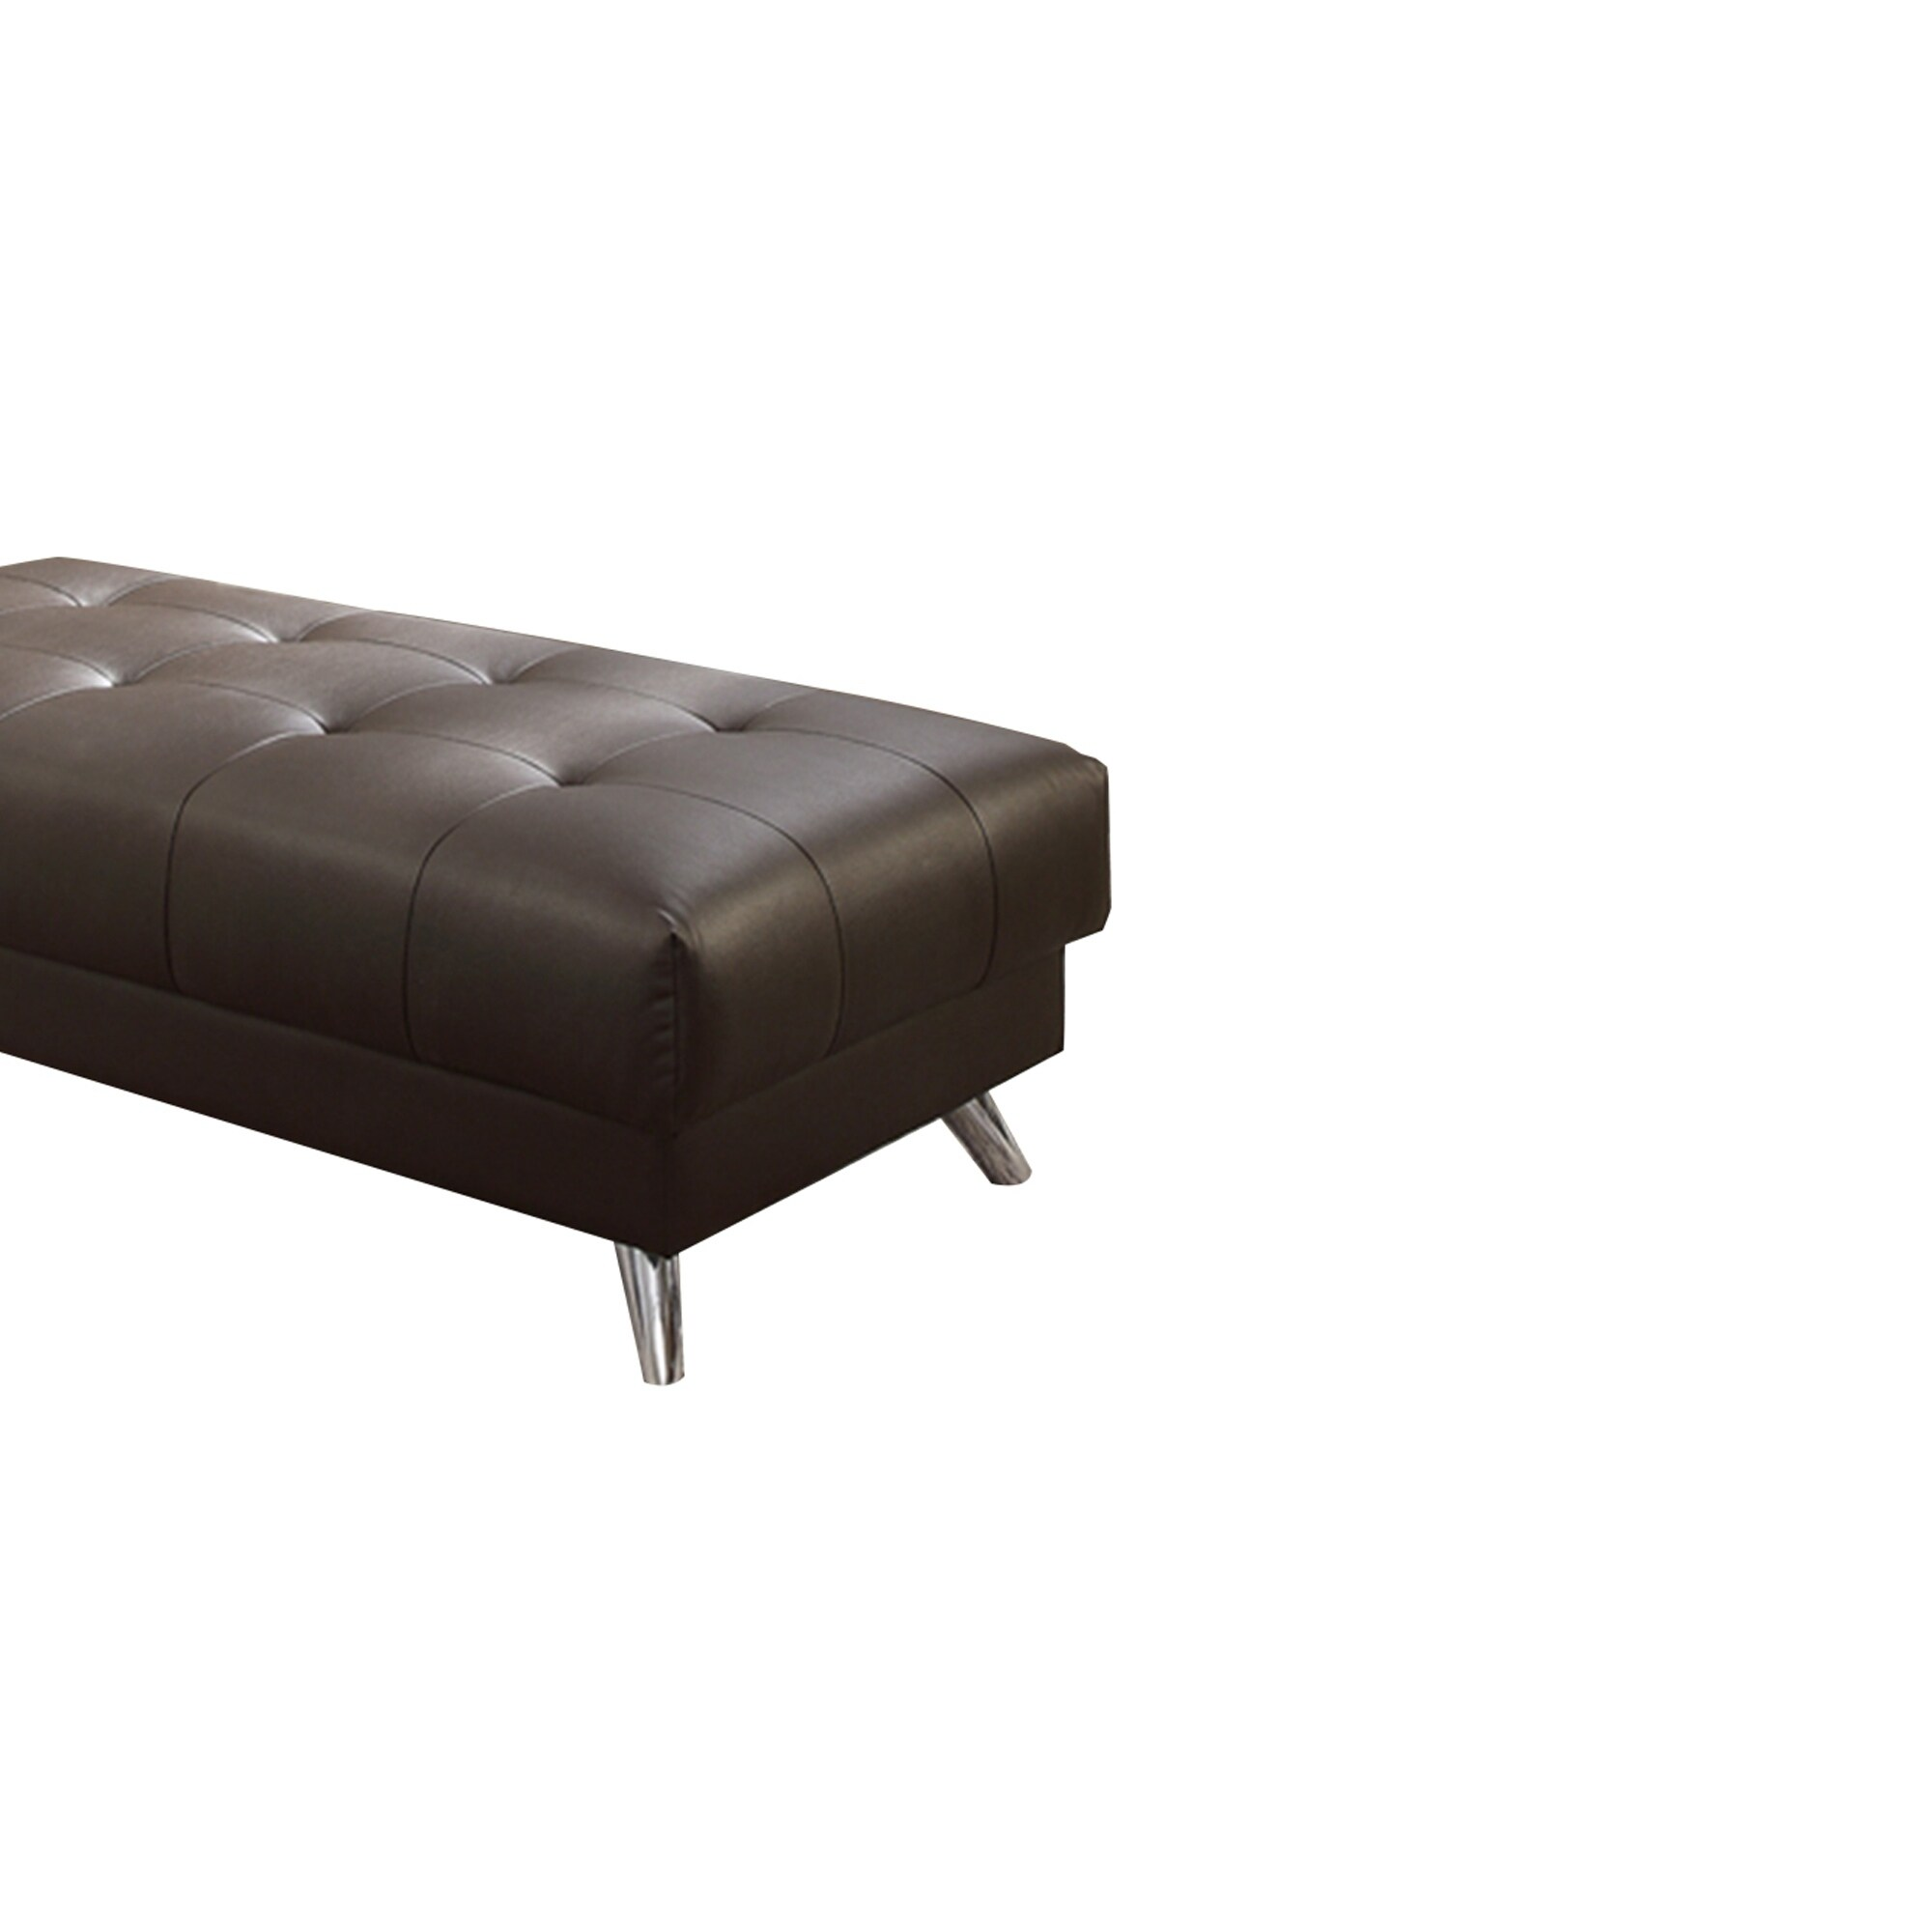 Pleasant Bonded Leather Ottoman In Espresso Brown With Chrome Legs Theyellowbook Wood Chair Design Ideas Theyellowbookinfo